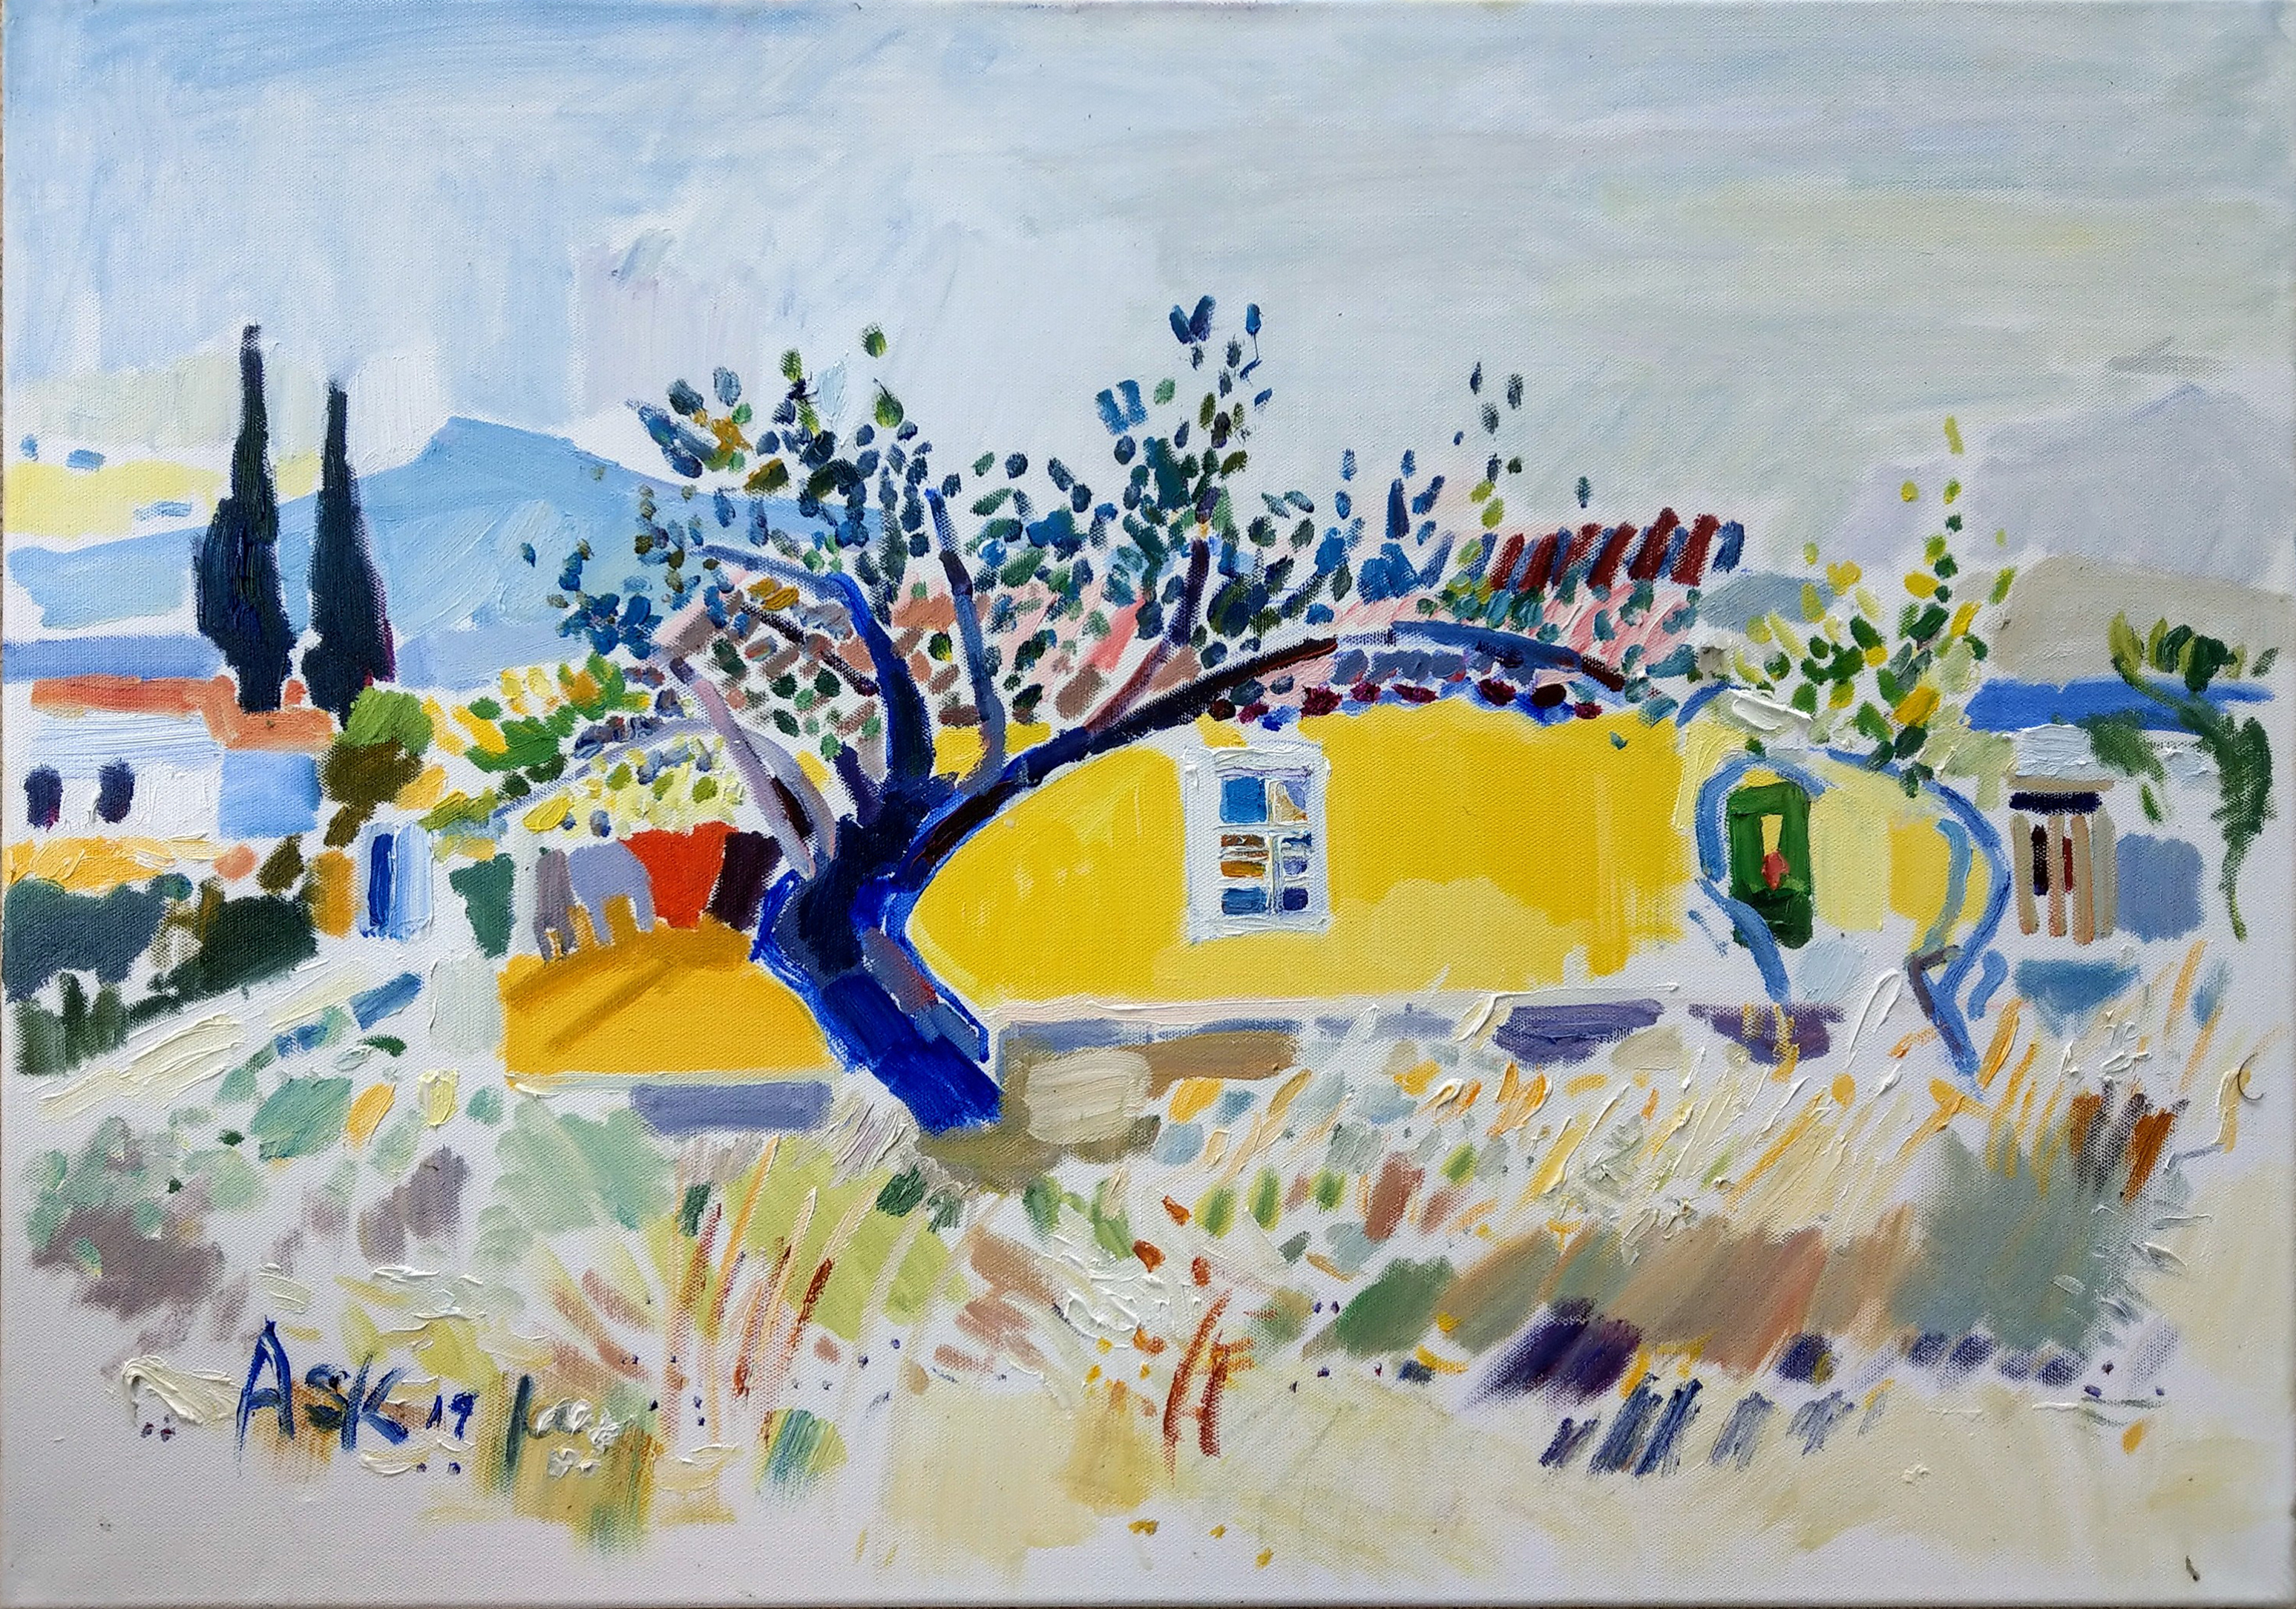 The Yellow House.  This oil painting is in a private collection., so not available for sale.  Painting by Ask , May 2019, in Aegina